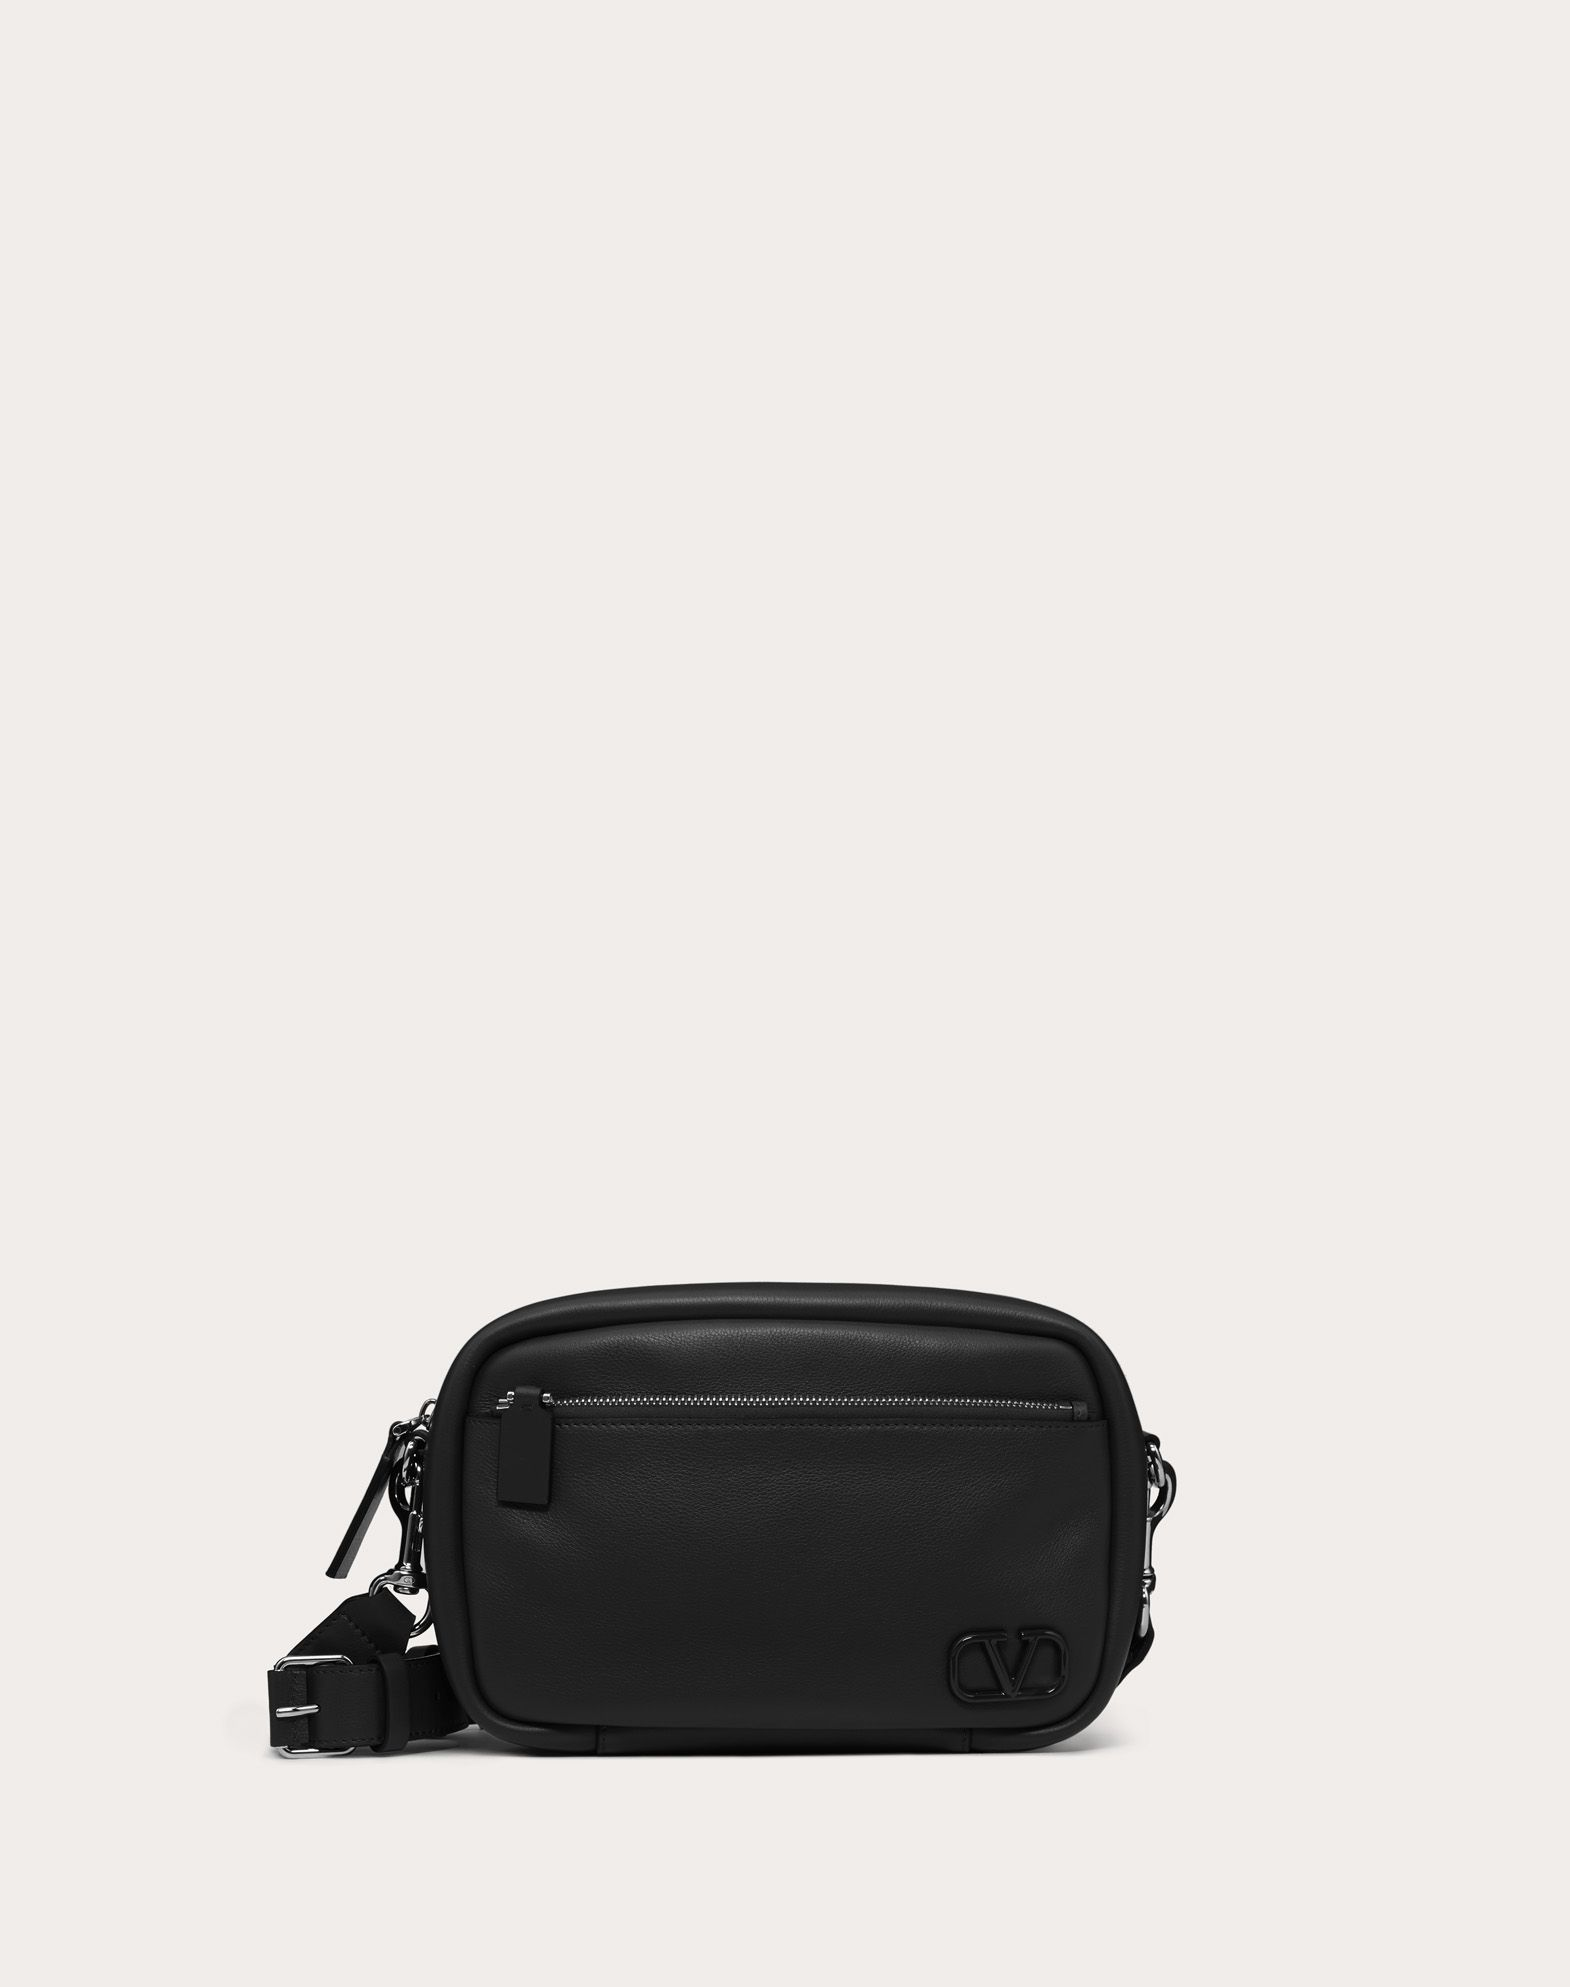 Leather VLOGO shoulder bag